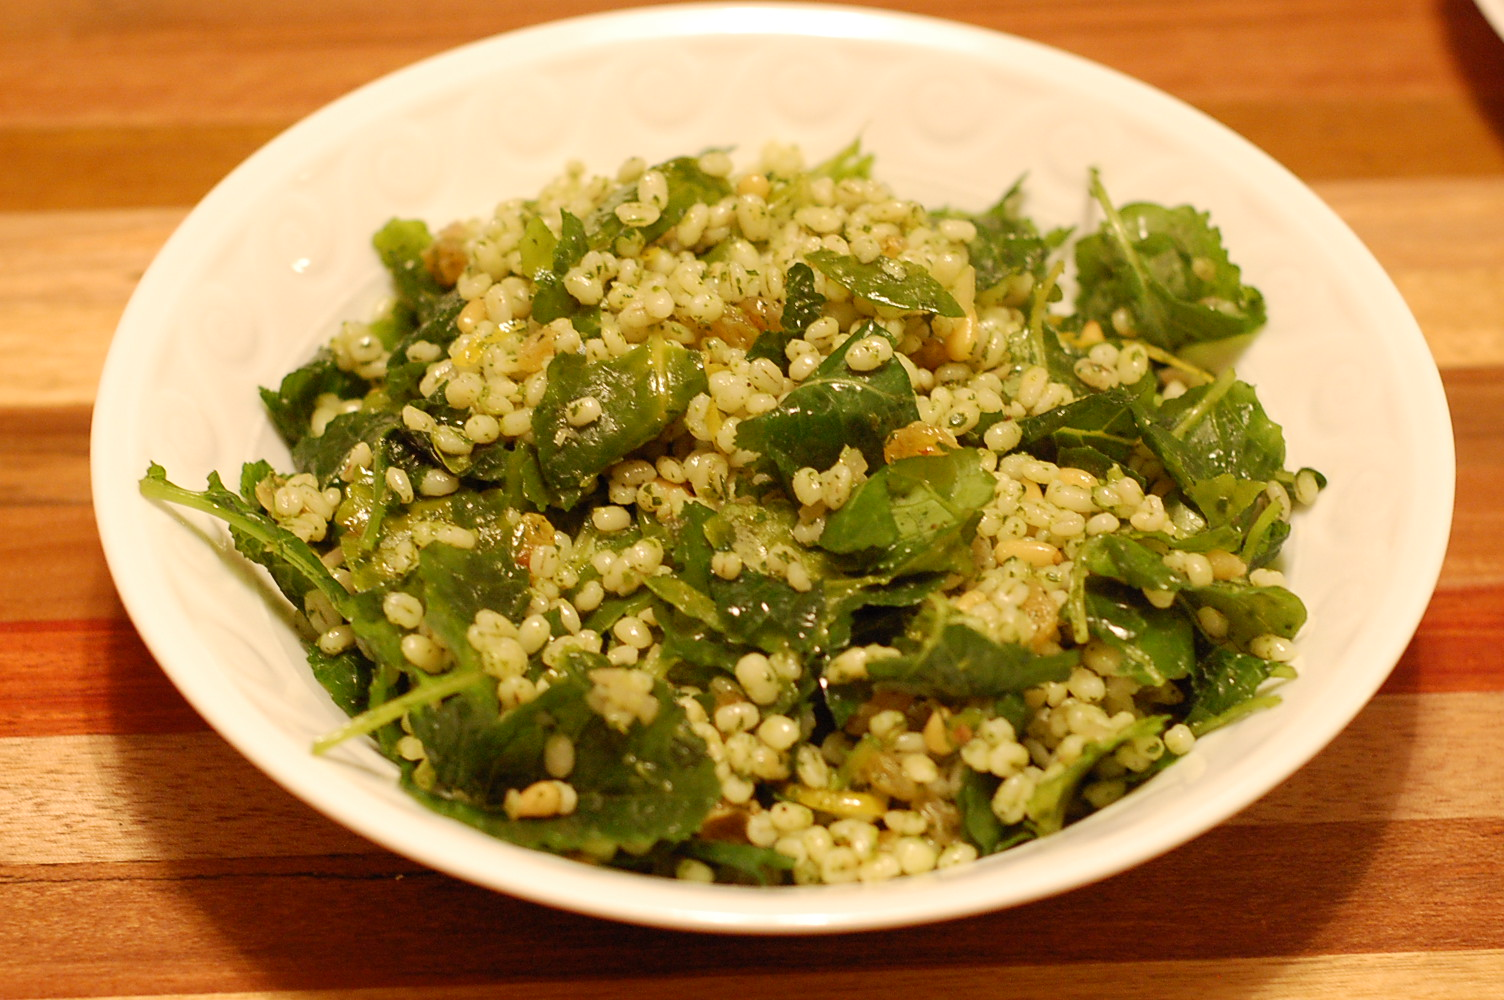 Barley Salad with Kale Pesto